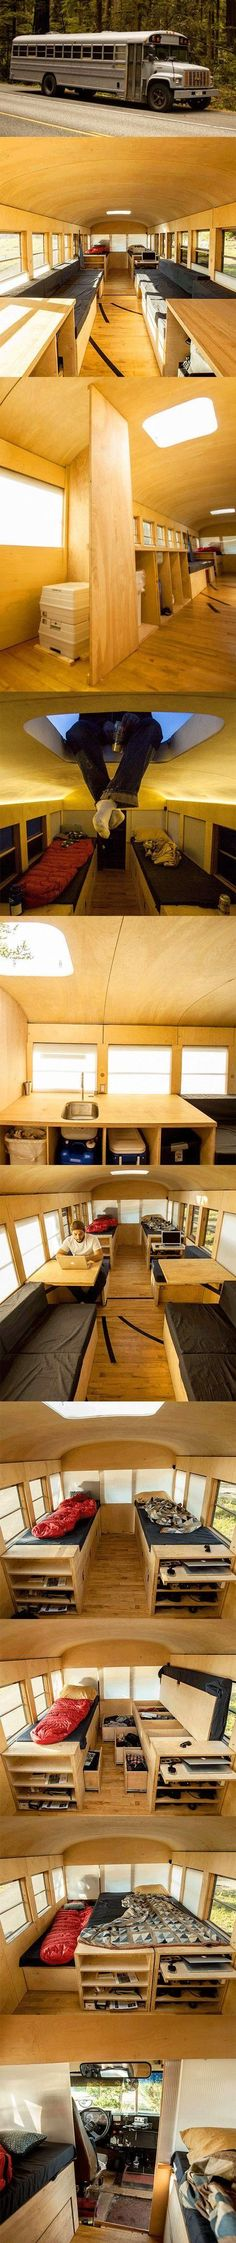 Architecture student Hank Butitta converted old school bus into a 225 square foot mobile home with small kitchen, living room, and bedroom. #mobilehomekitchens